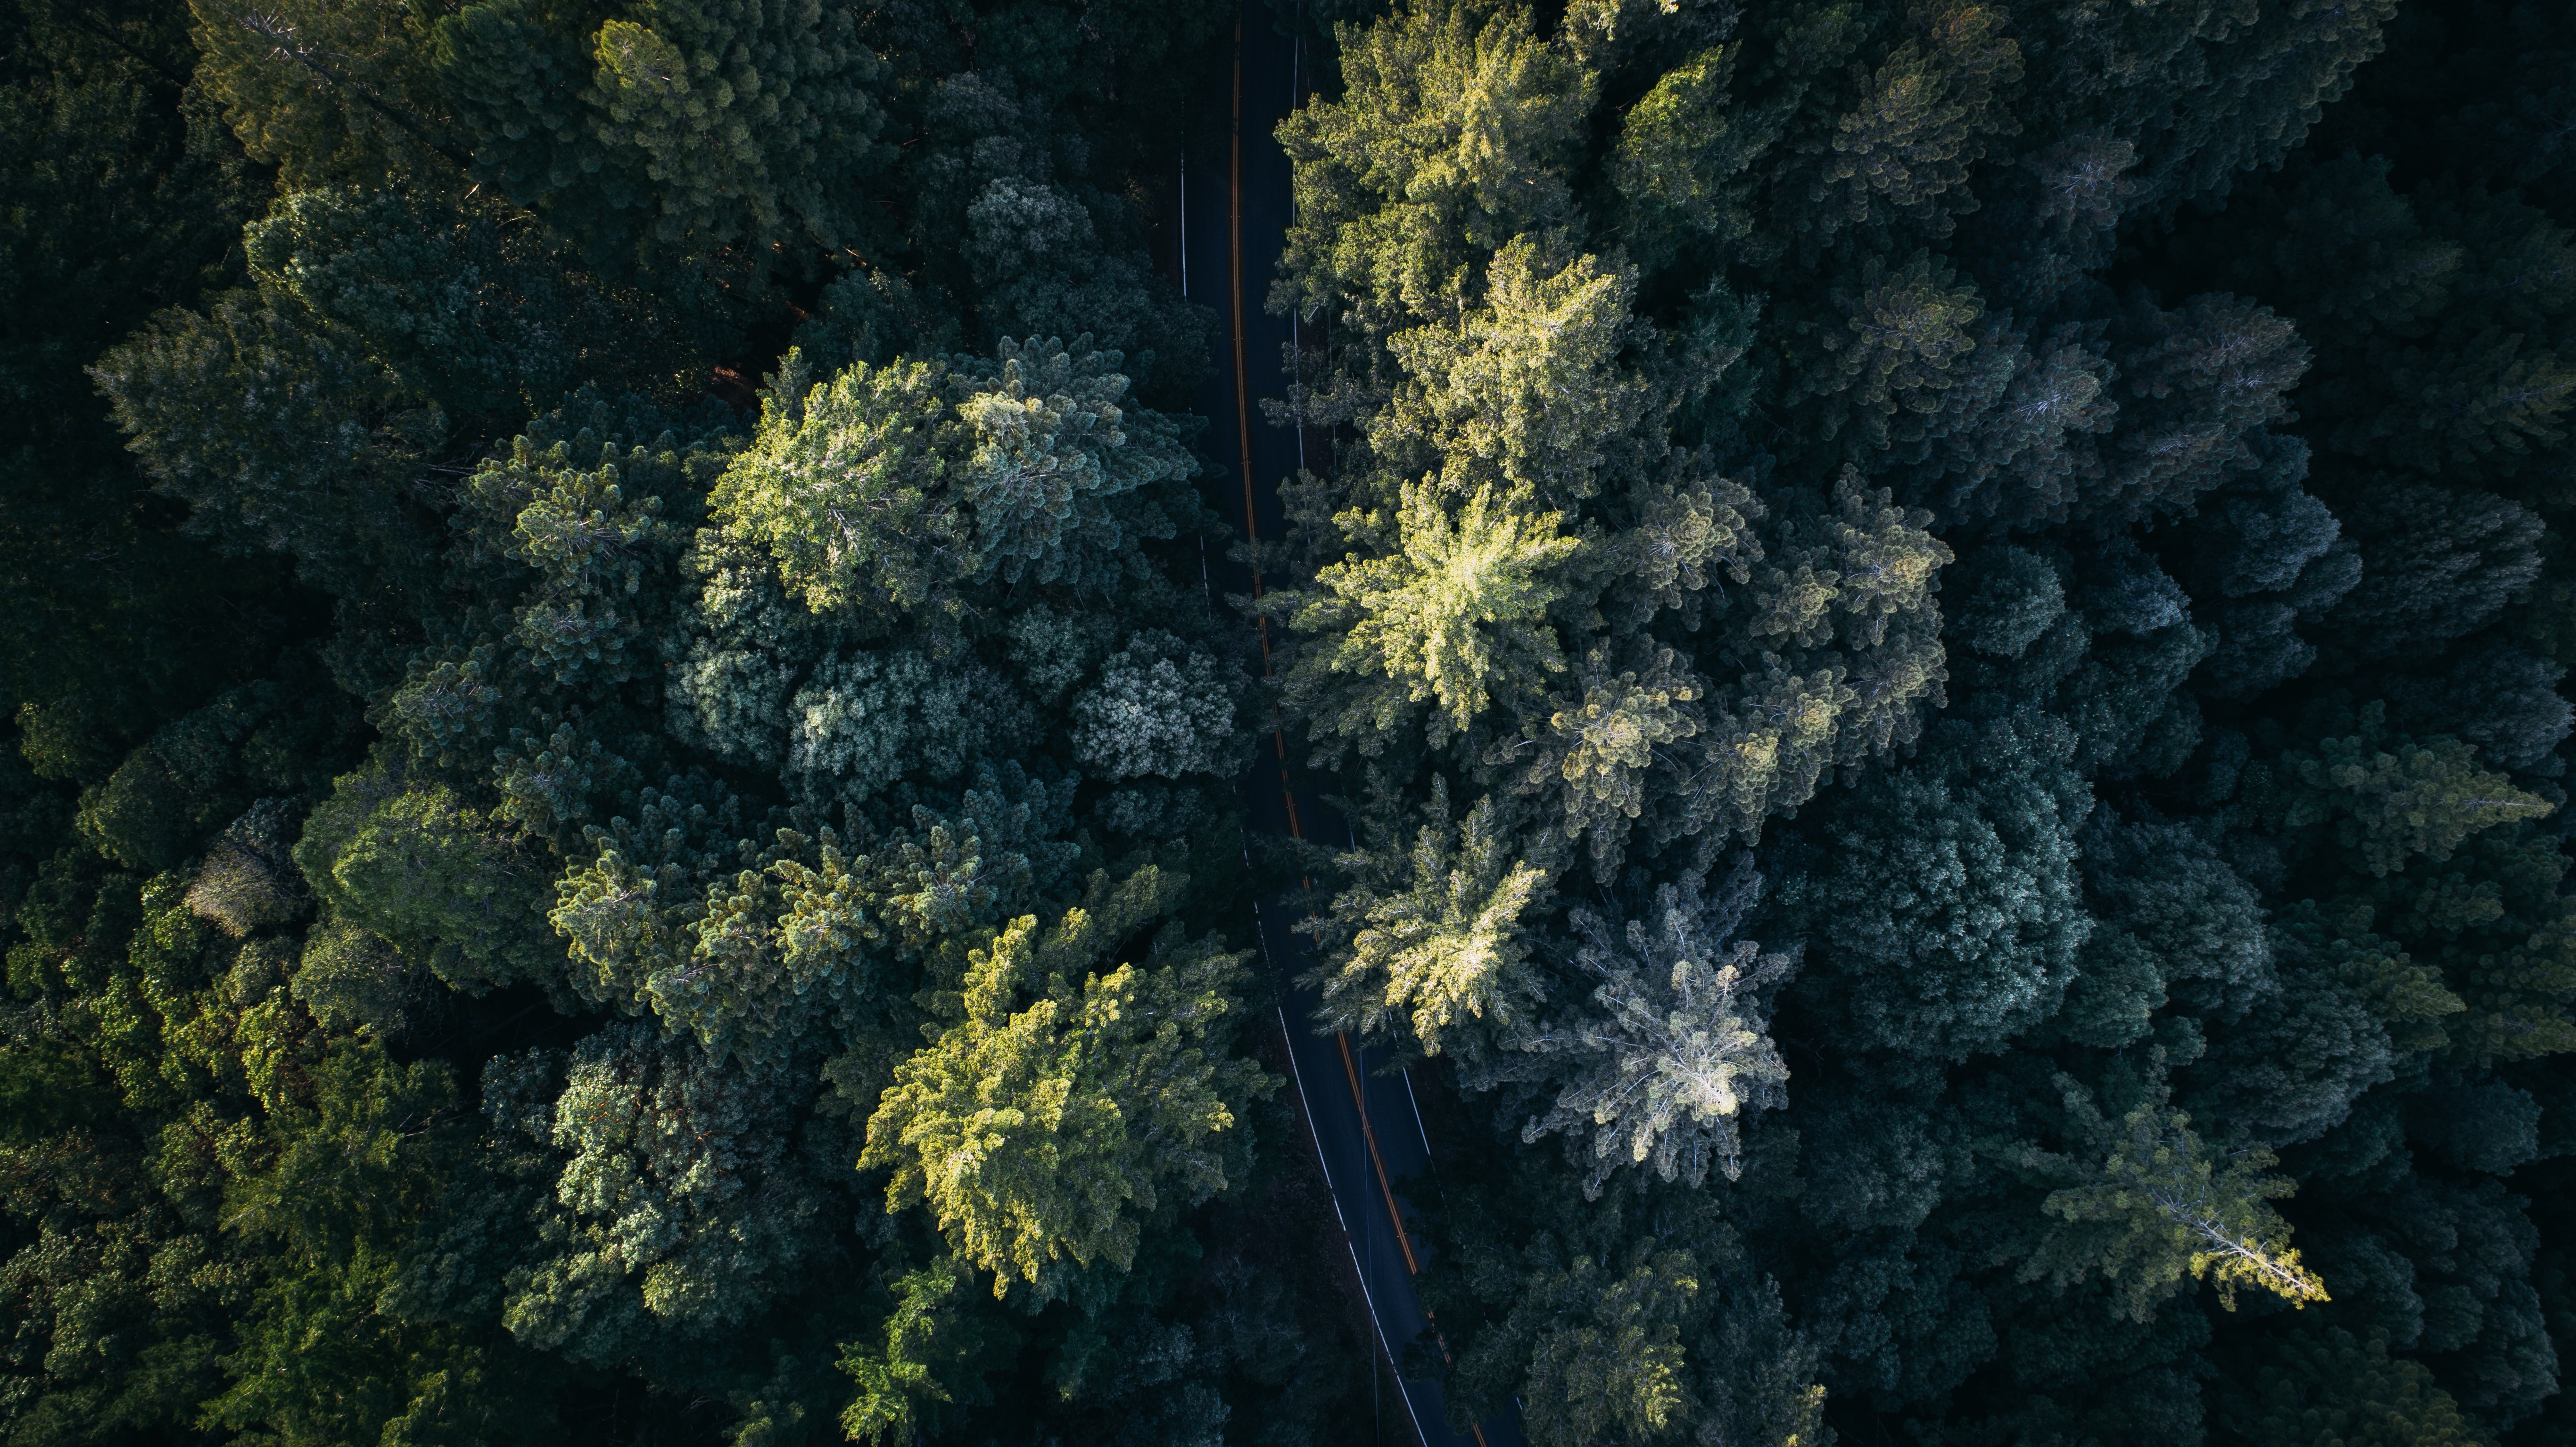 Aerial view of a curving road through a dense forest